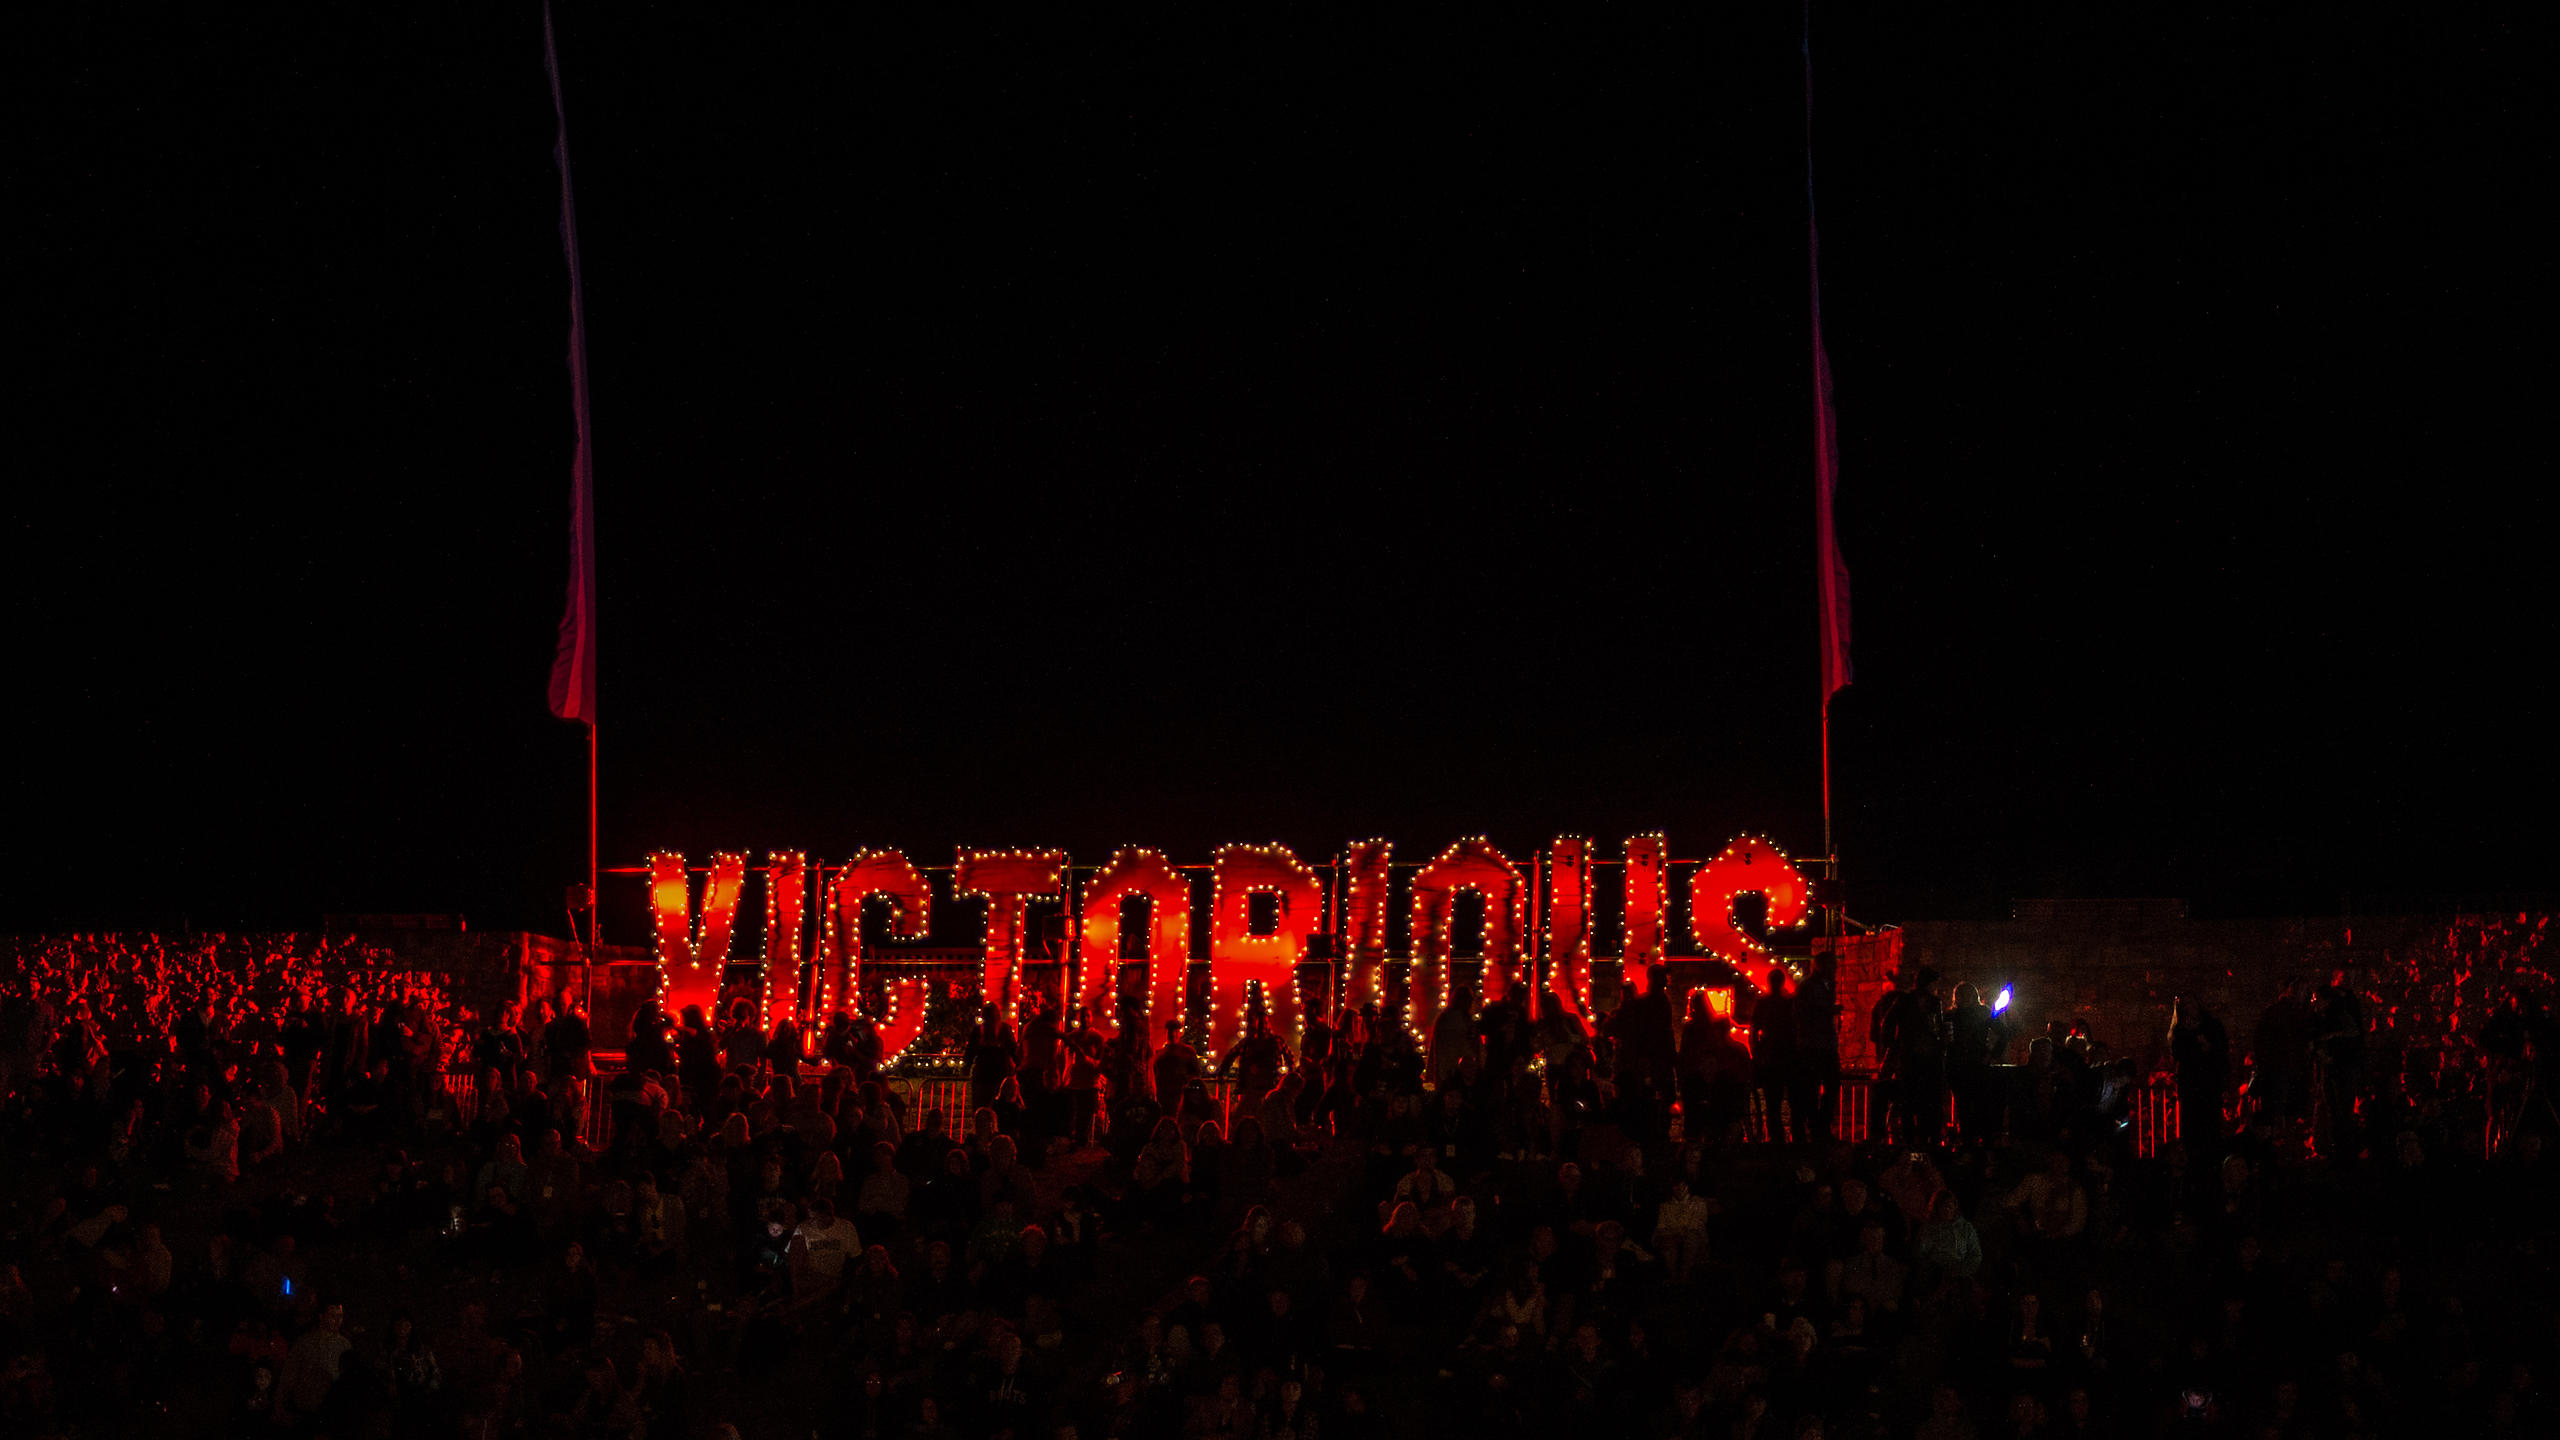 Victorious Festival Neon Sign over Crowds